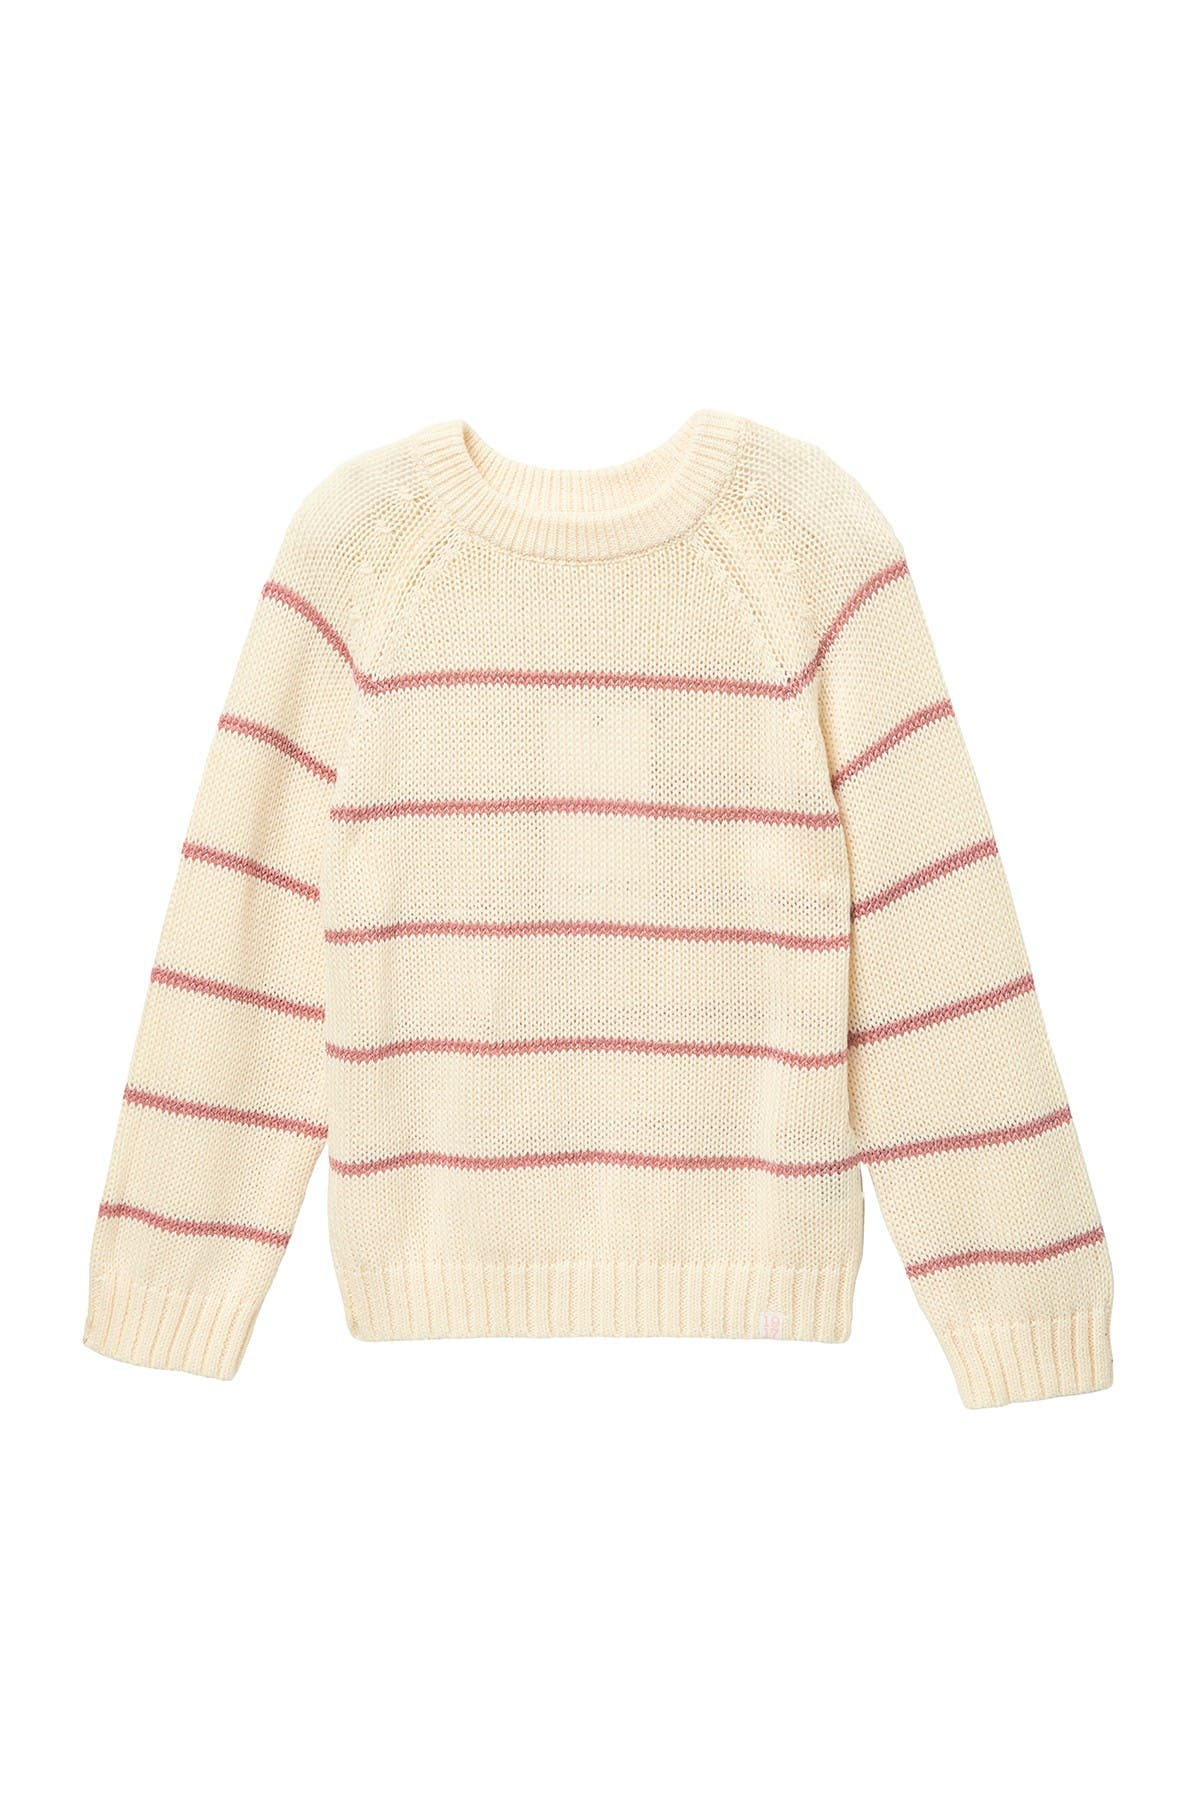 Image of Sovereign Code Eliana Sweater